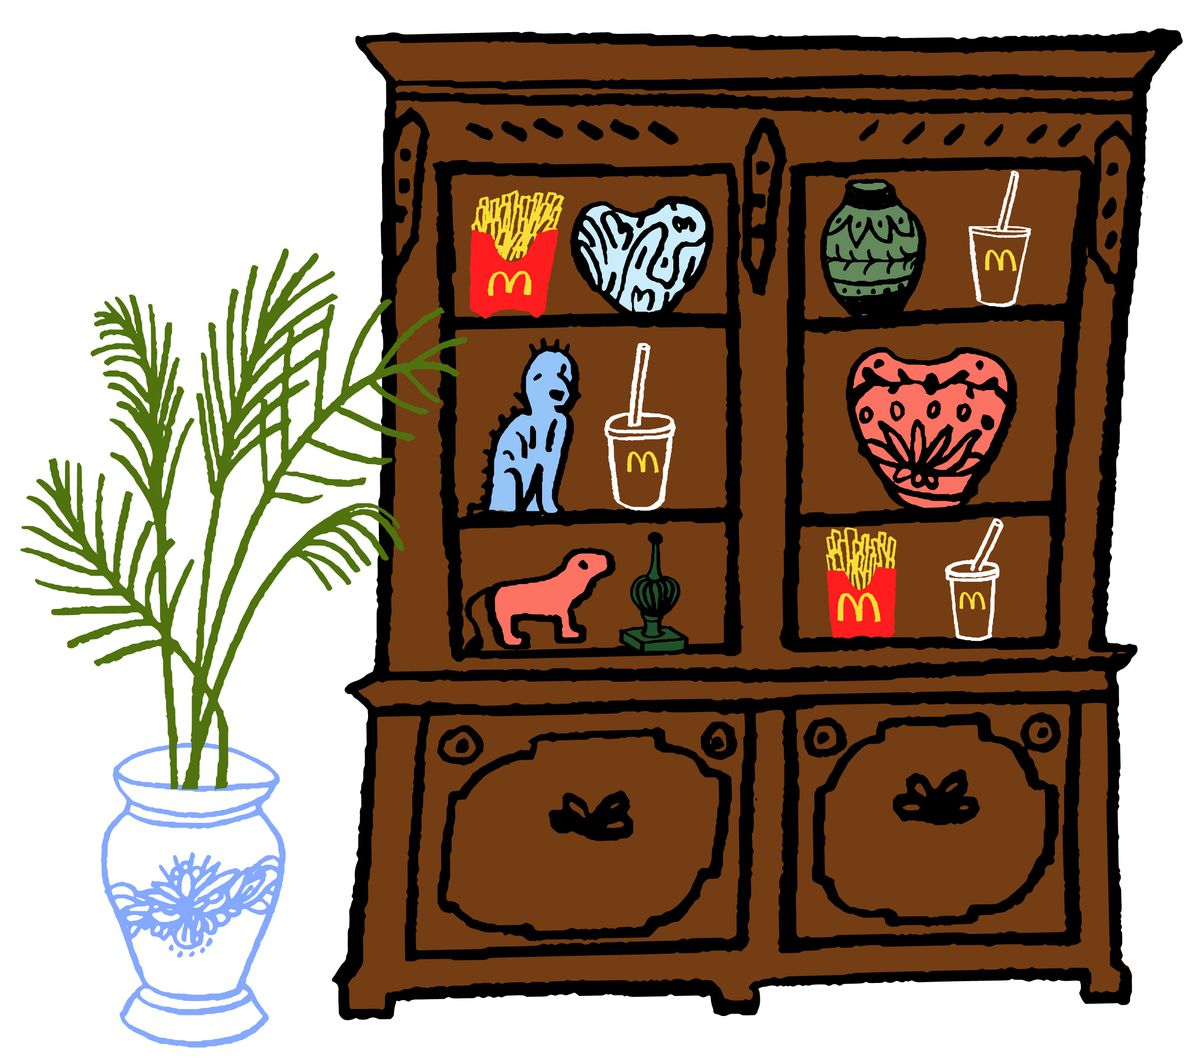 An illustration of a dining room cabinet filled with french fries and sodas.